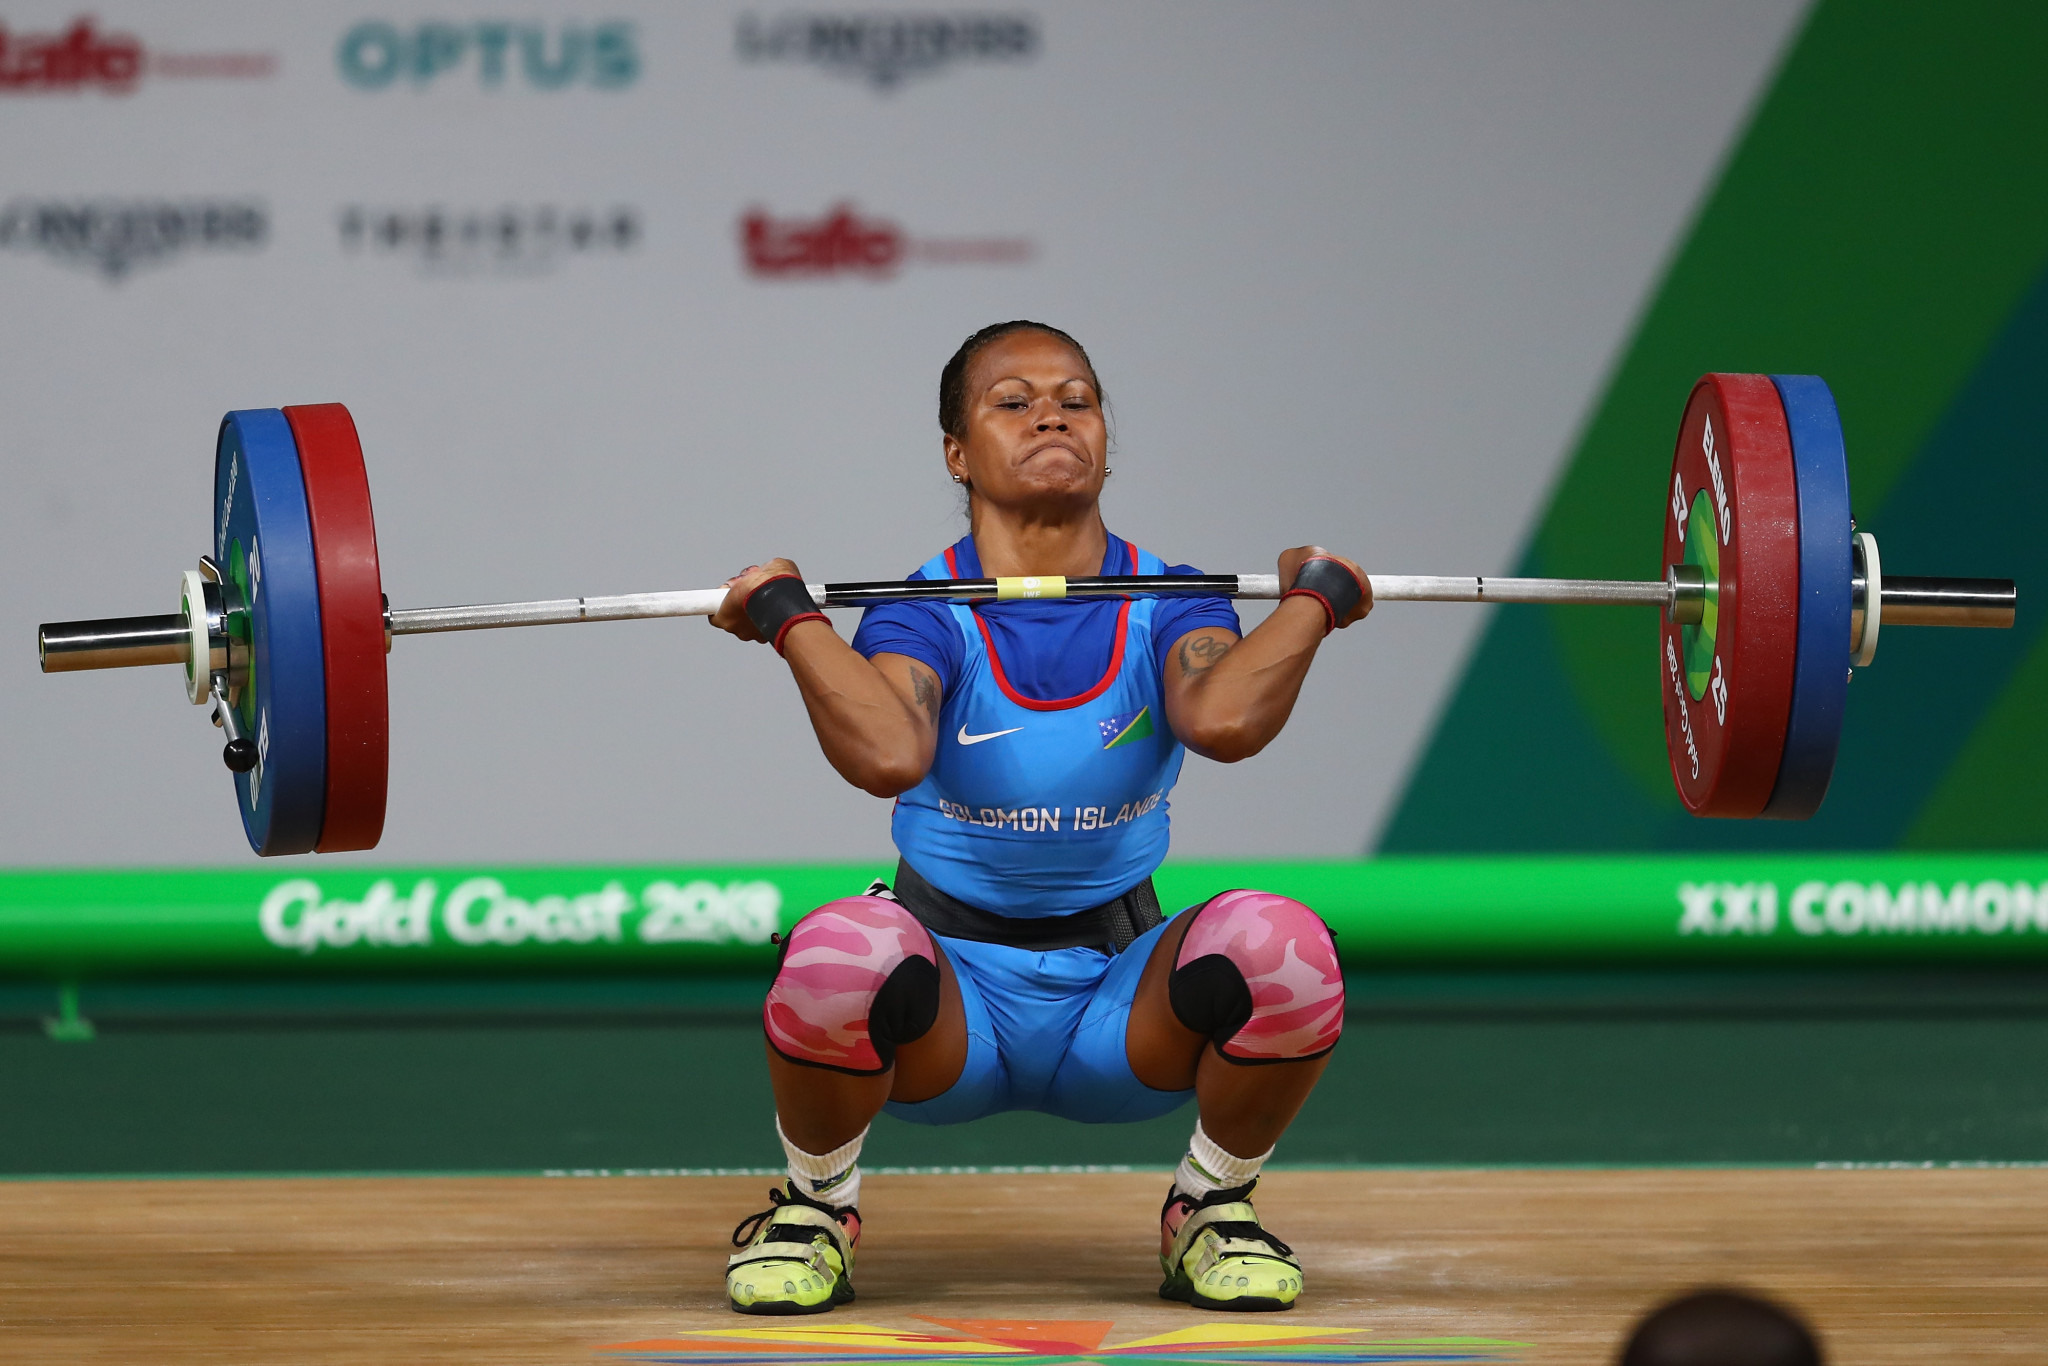 Jenly Wini became the first athlete from the Solomon Islands to win a Commonwealth Games medal by finishing third in the women's 58kg category at Gold Coast 2018 ©Getty Images